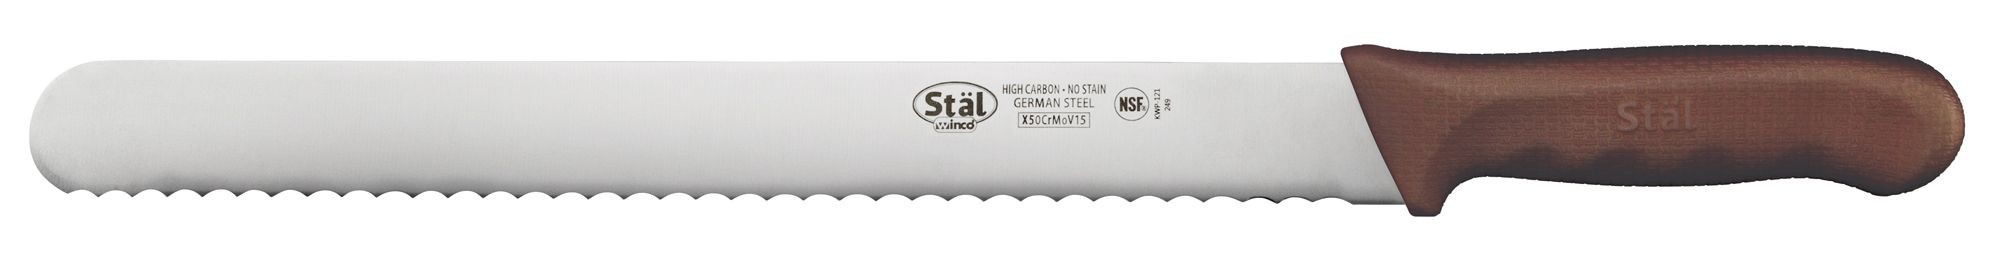 """Winco KWP-121N 12"""" Straight Edge Bread Knife with Brown Handle"""